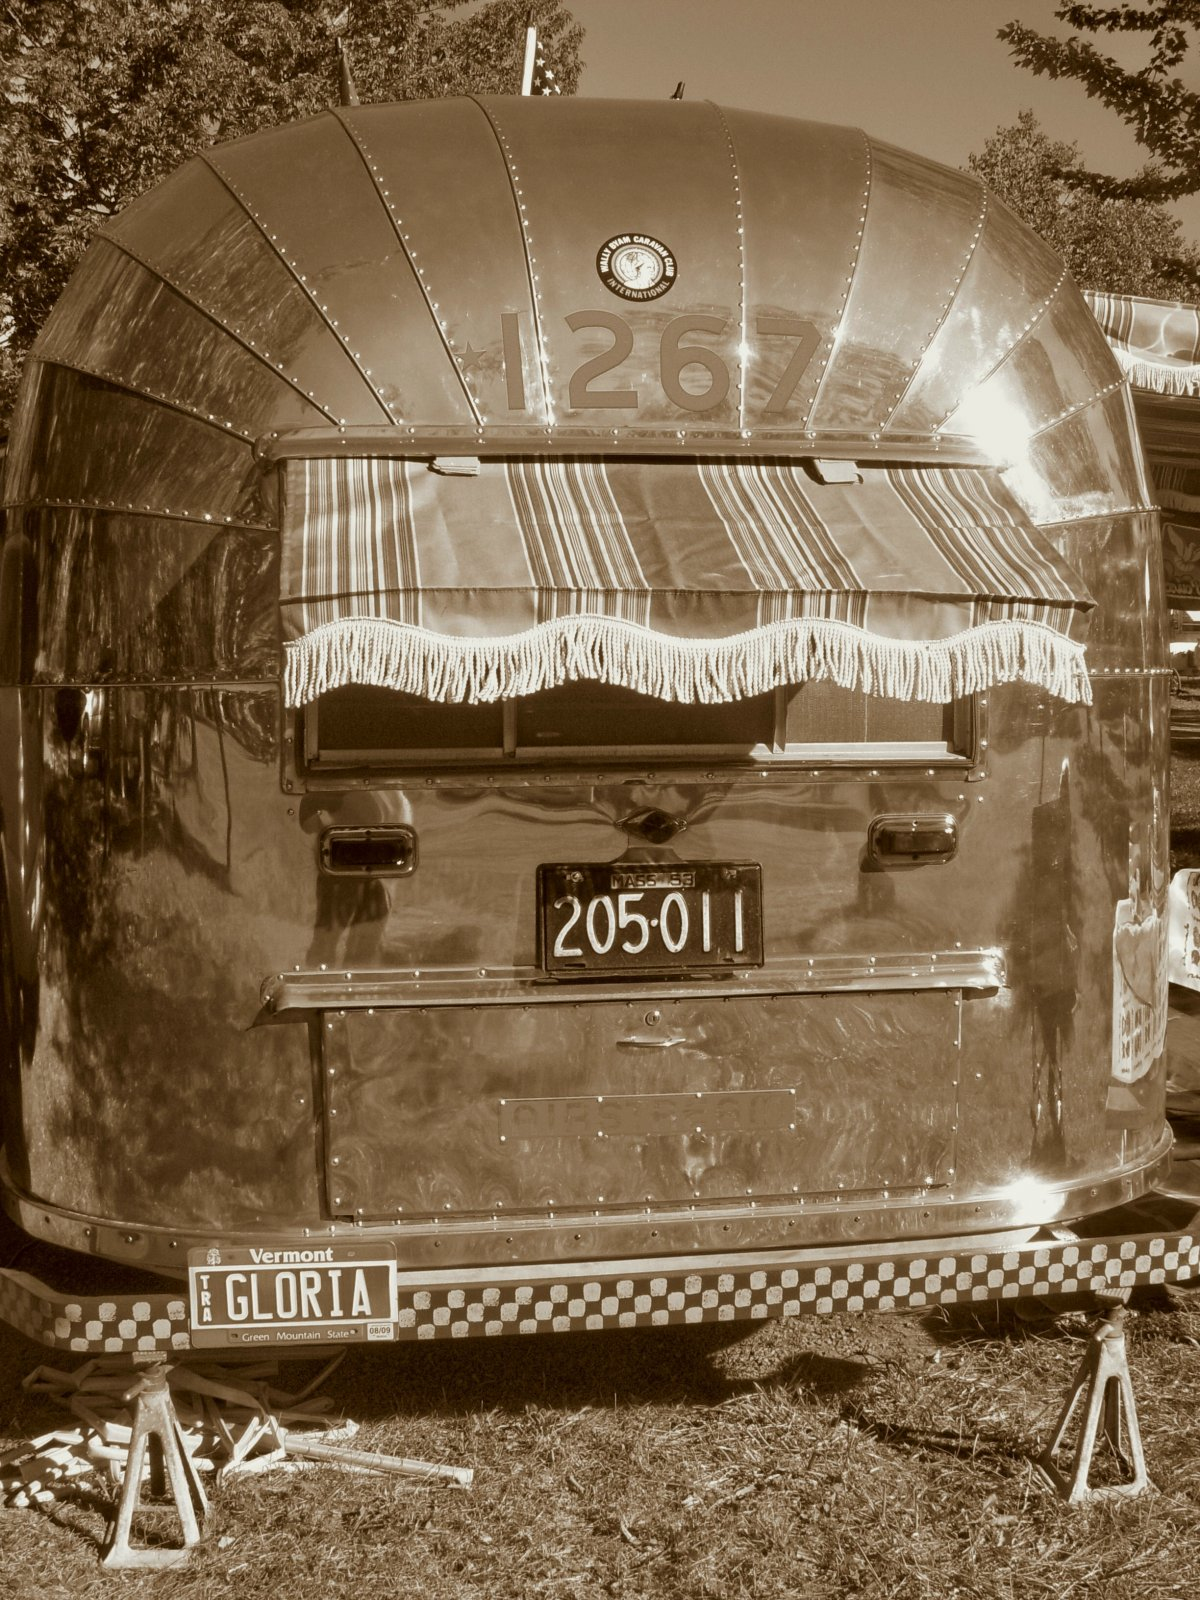 Click image for larger version  Name:back of 53 sepia.jpg Views:89 Size:445.8 KB ID:103247